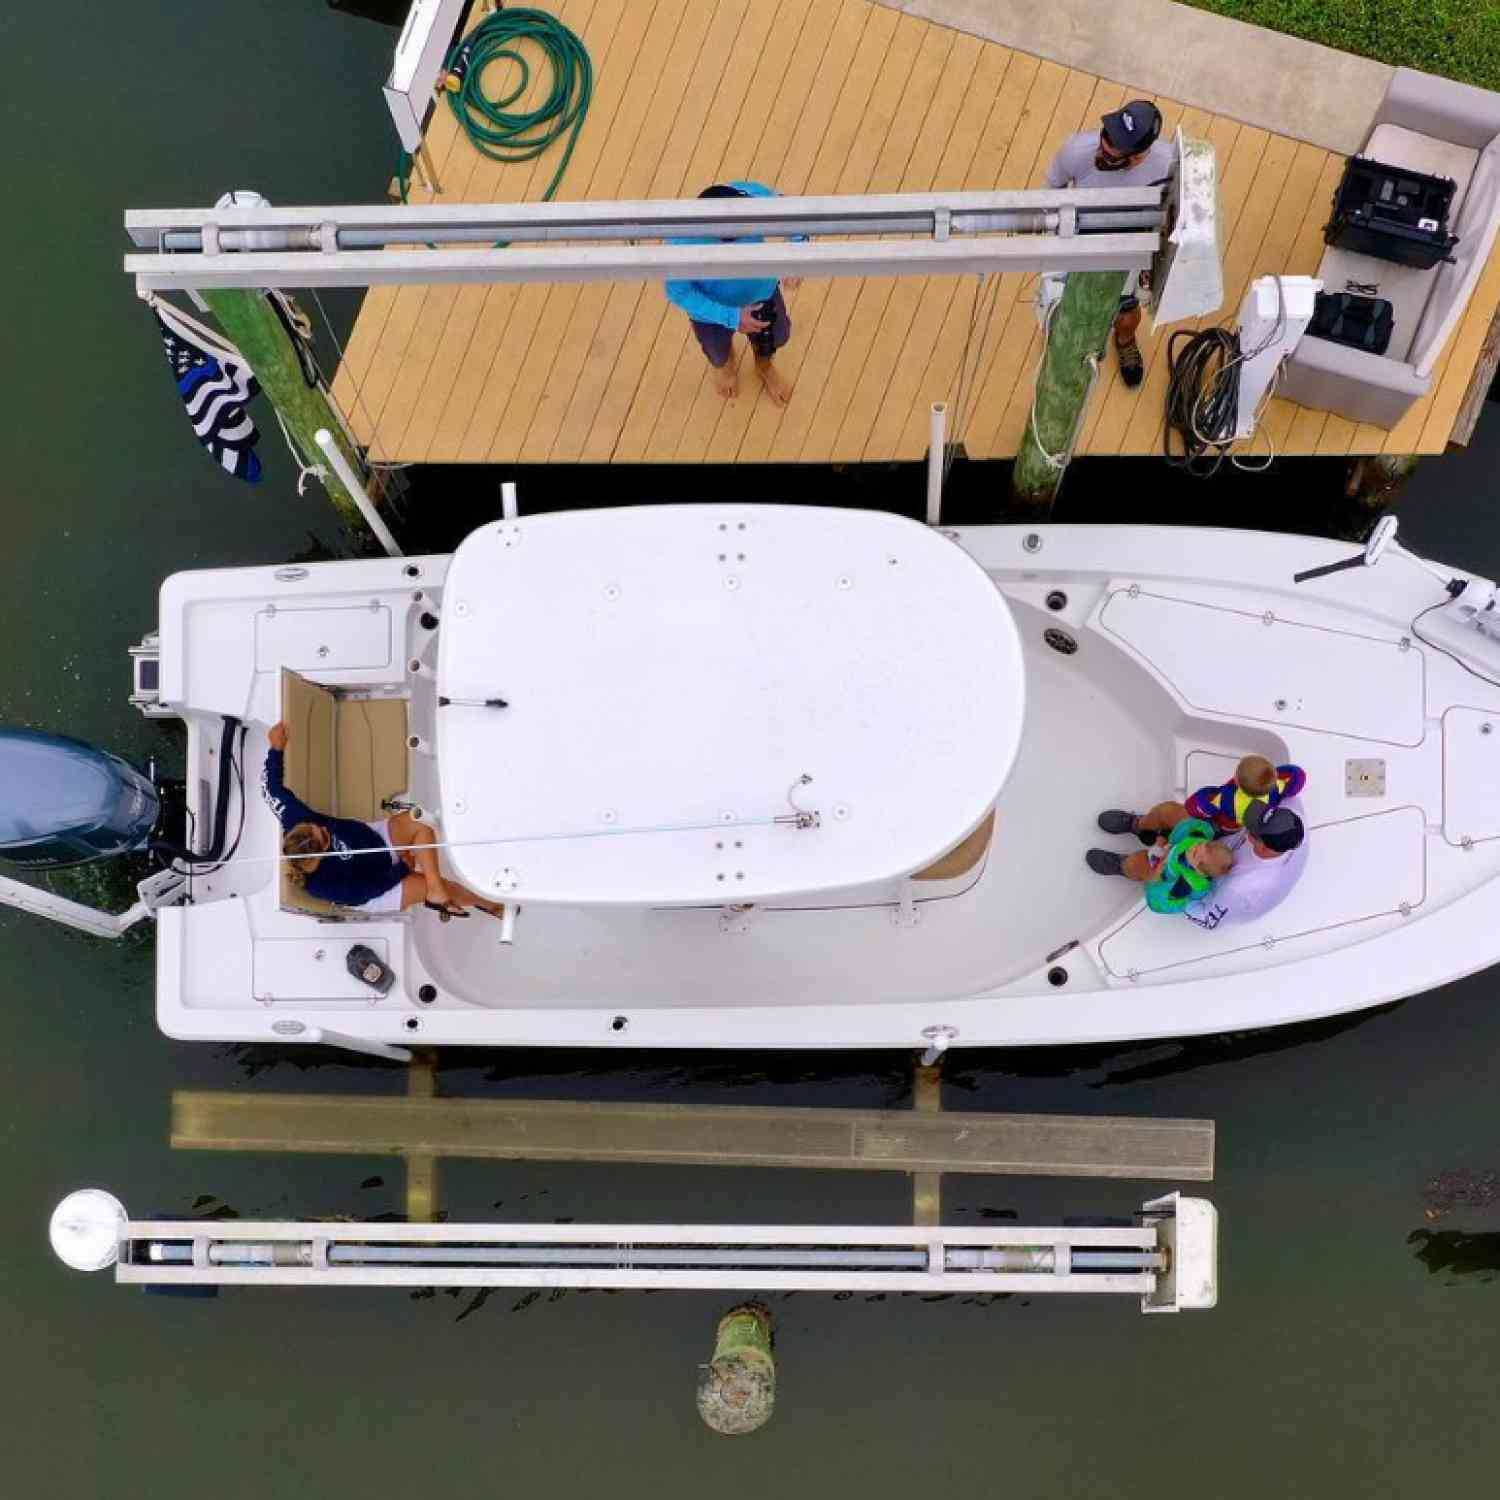 Title: Bird's view - On board their Sportsman Masters 247 Bay Boat - Location: Anna Maria, FL. Participating in the Photo Contest #SportsmanJune2020